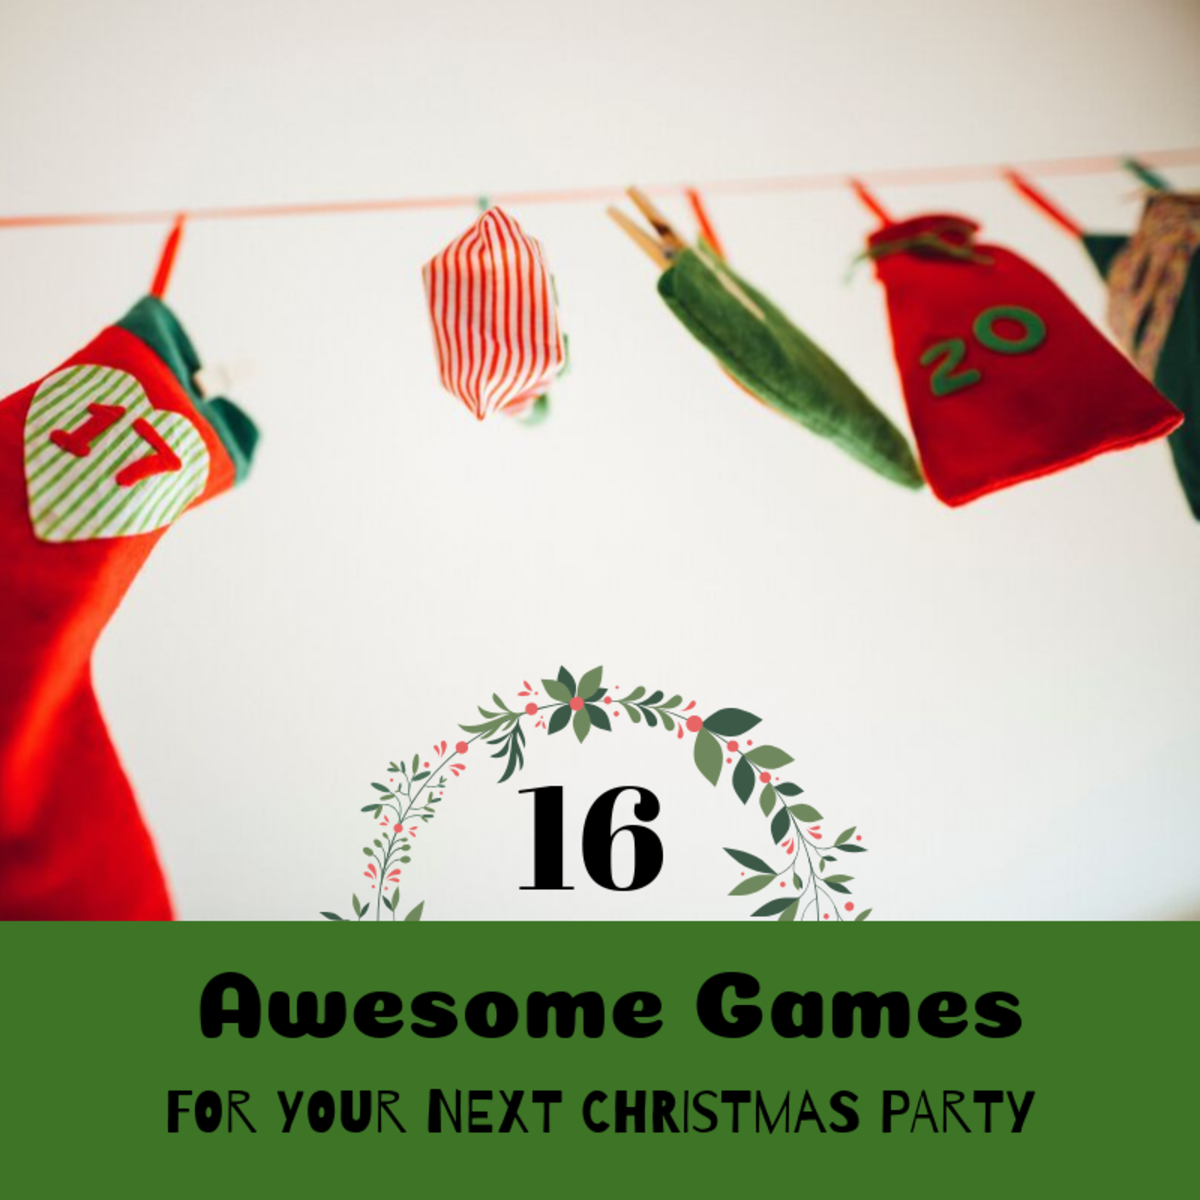 Holiday games are a great way to liven up any Christmas party. Some of these games are great for kids and families, and others are perfect for adults and office parties.